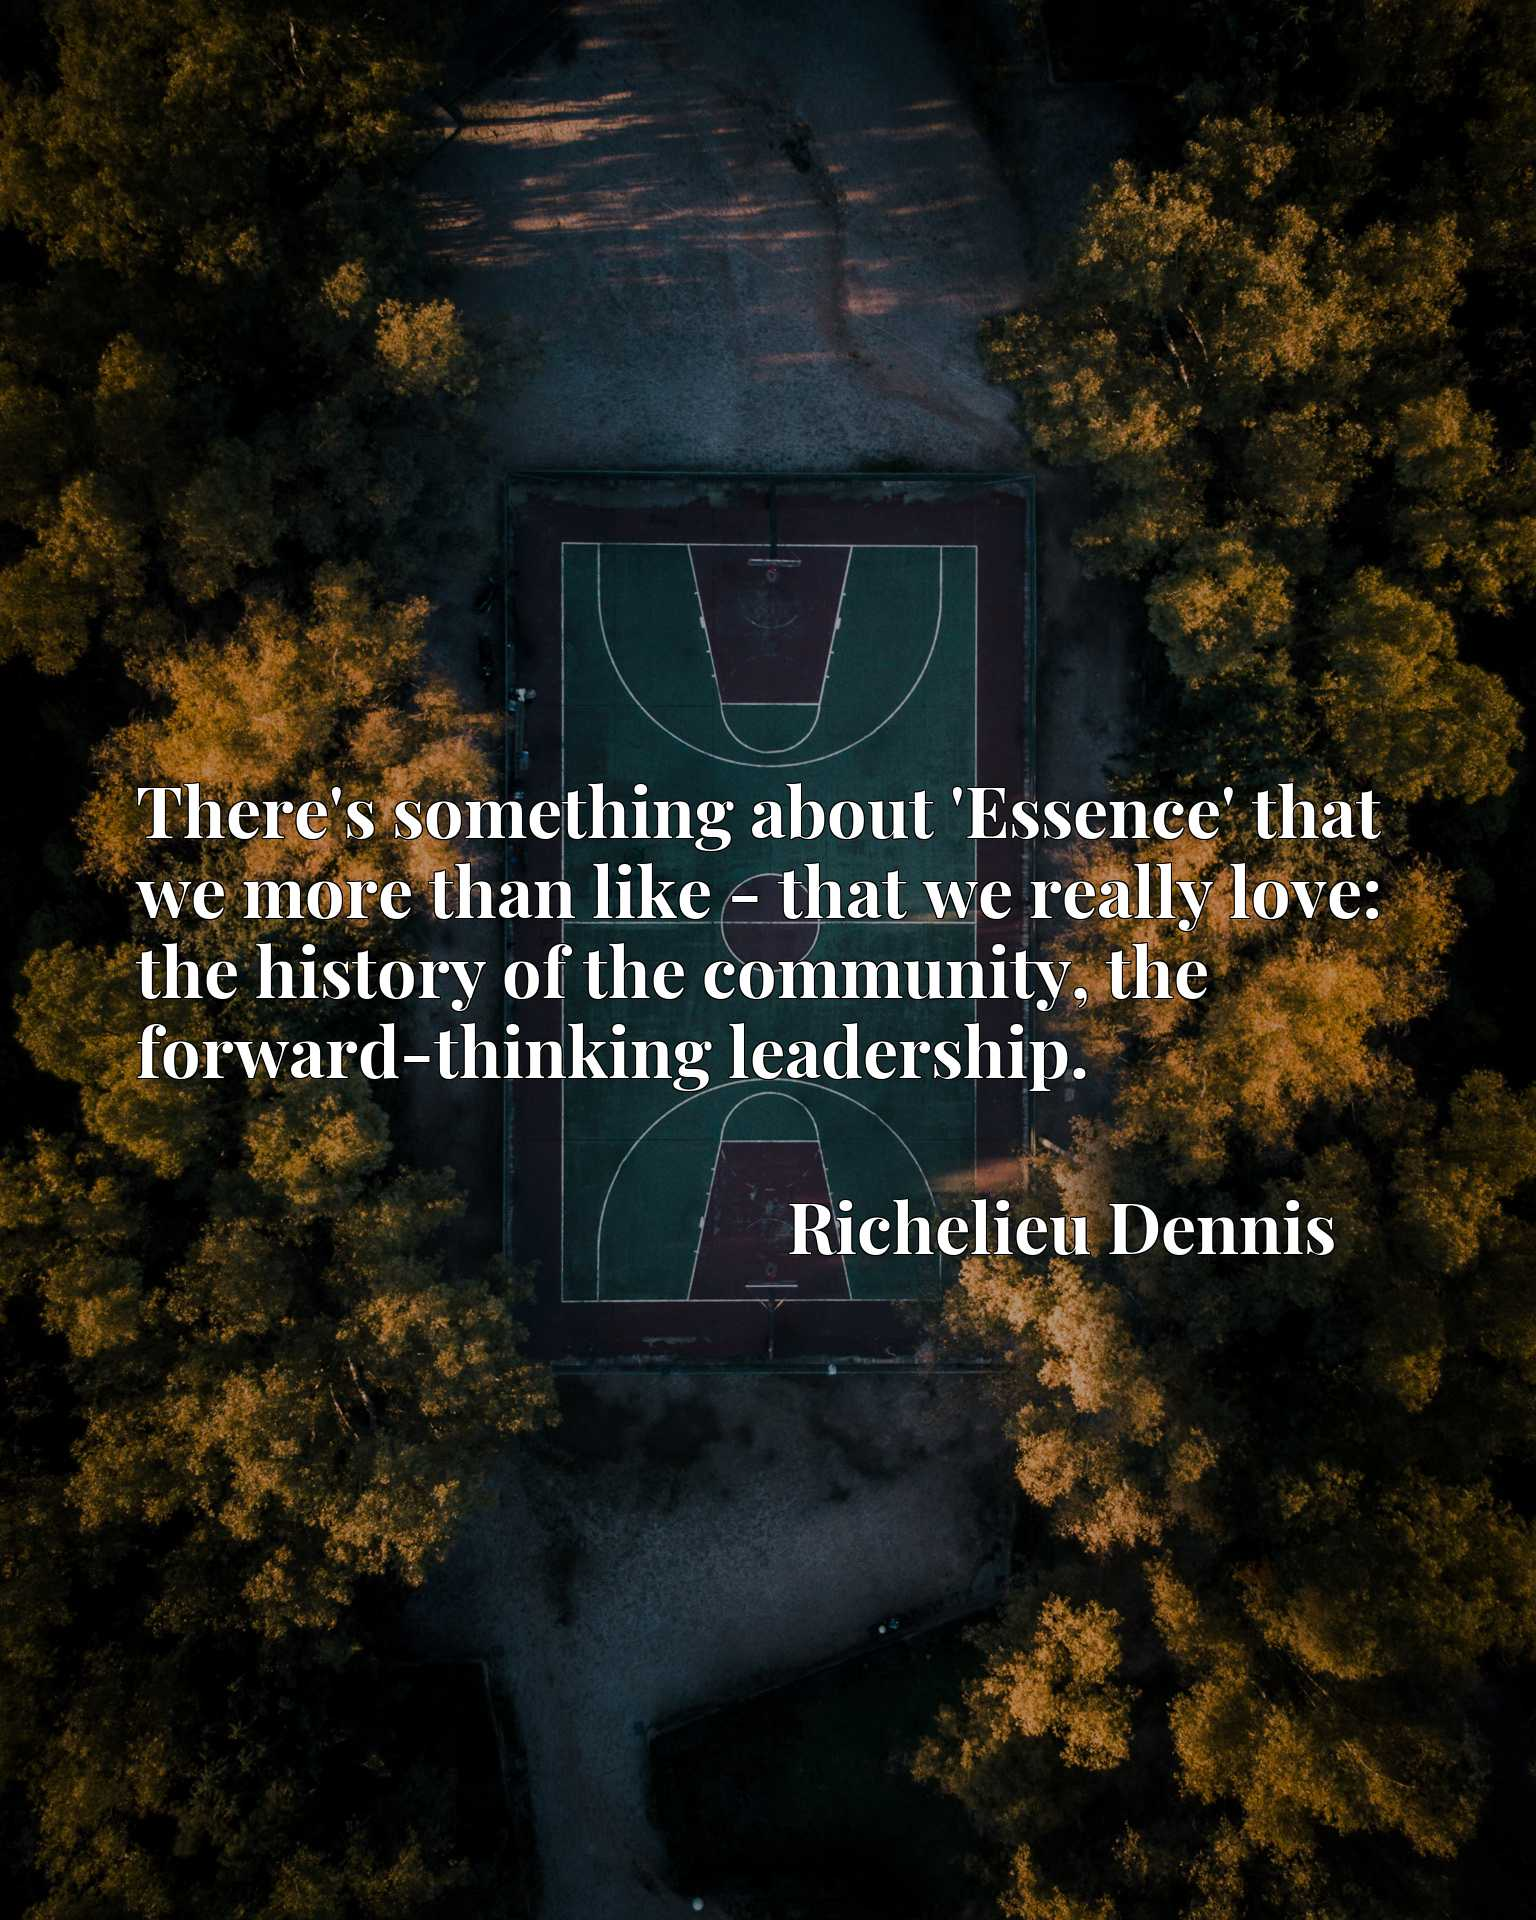 Quote Picture :There's something about 'Essence' that we more than like - that we really love: the history of the community, the forward-thinking leadership.